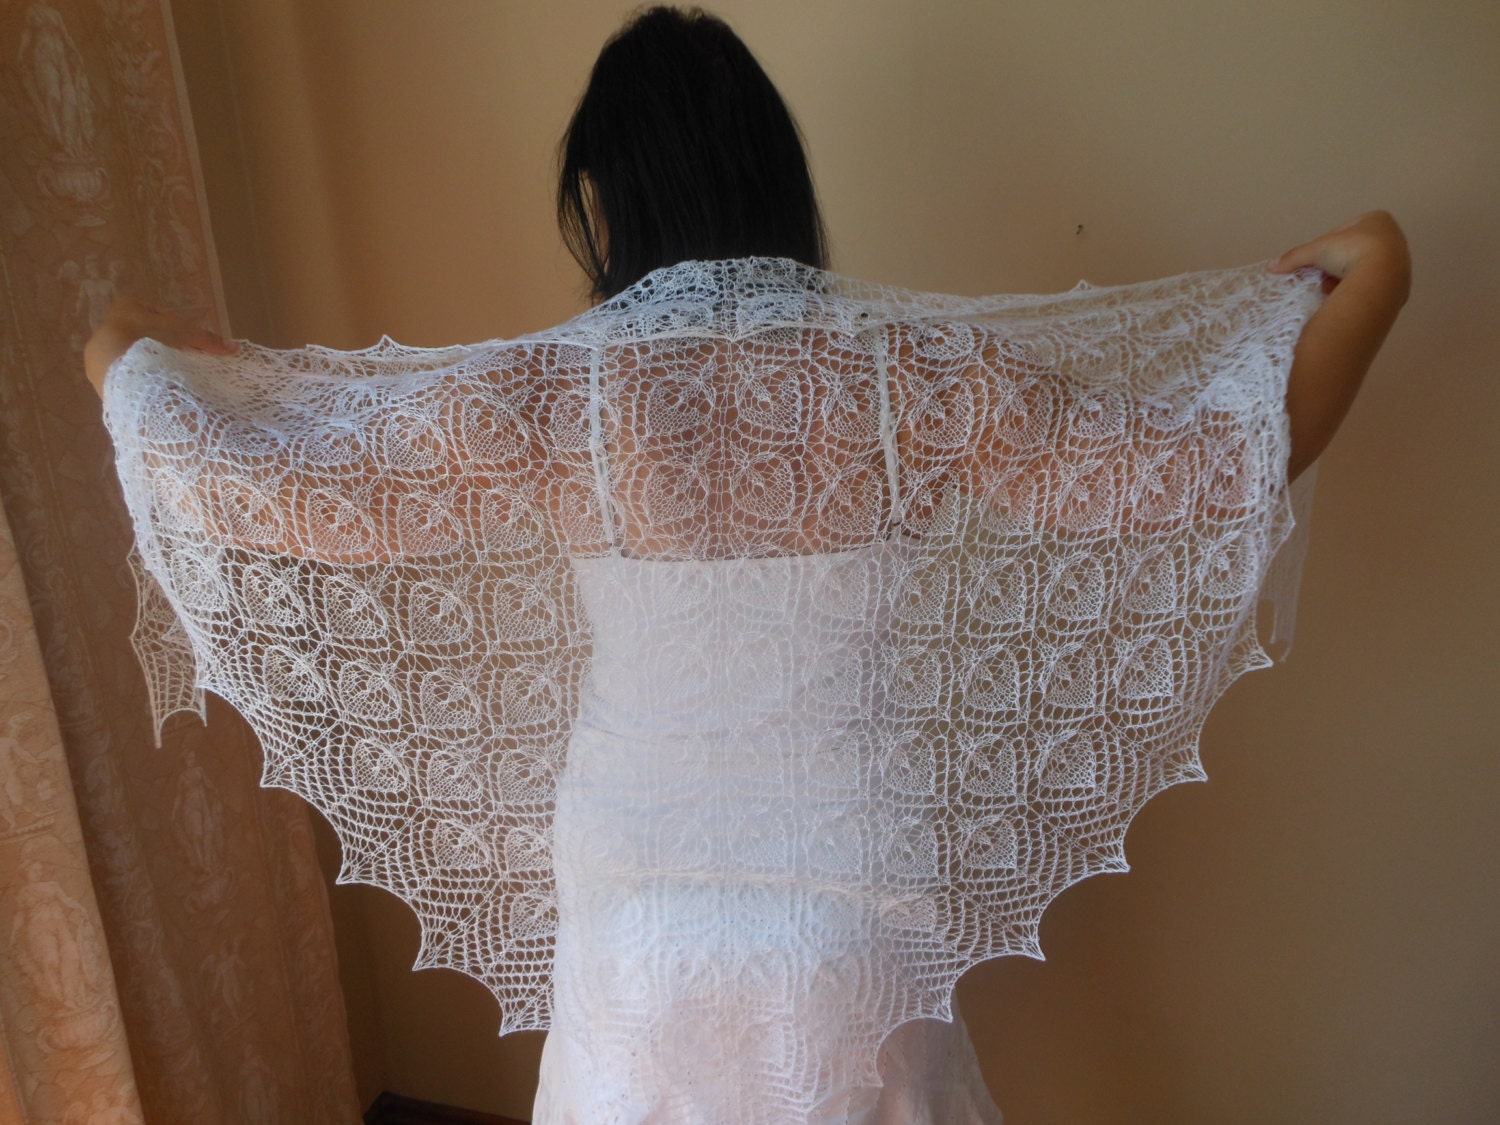 Mar 29, · Her ghost, clad in a cap and lace shawl, has reportedly been seen heading towards the East Room, arms outstretched as if carrying laundry. During her visit to the White .